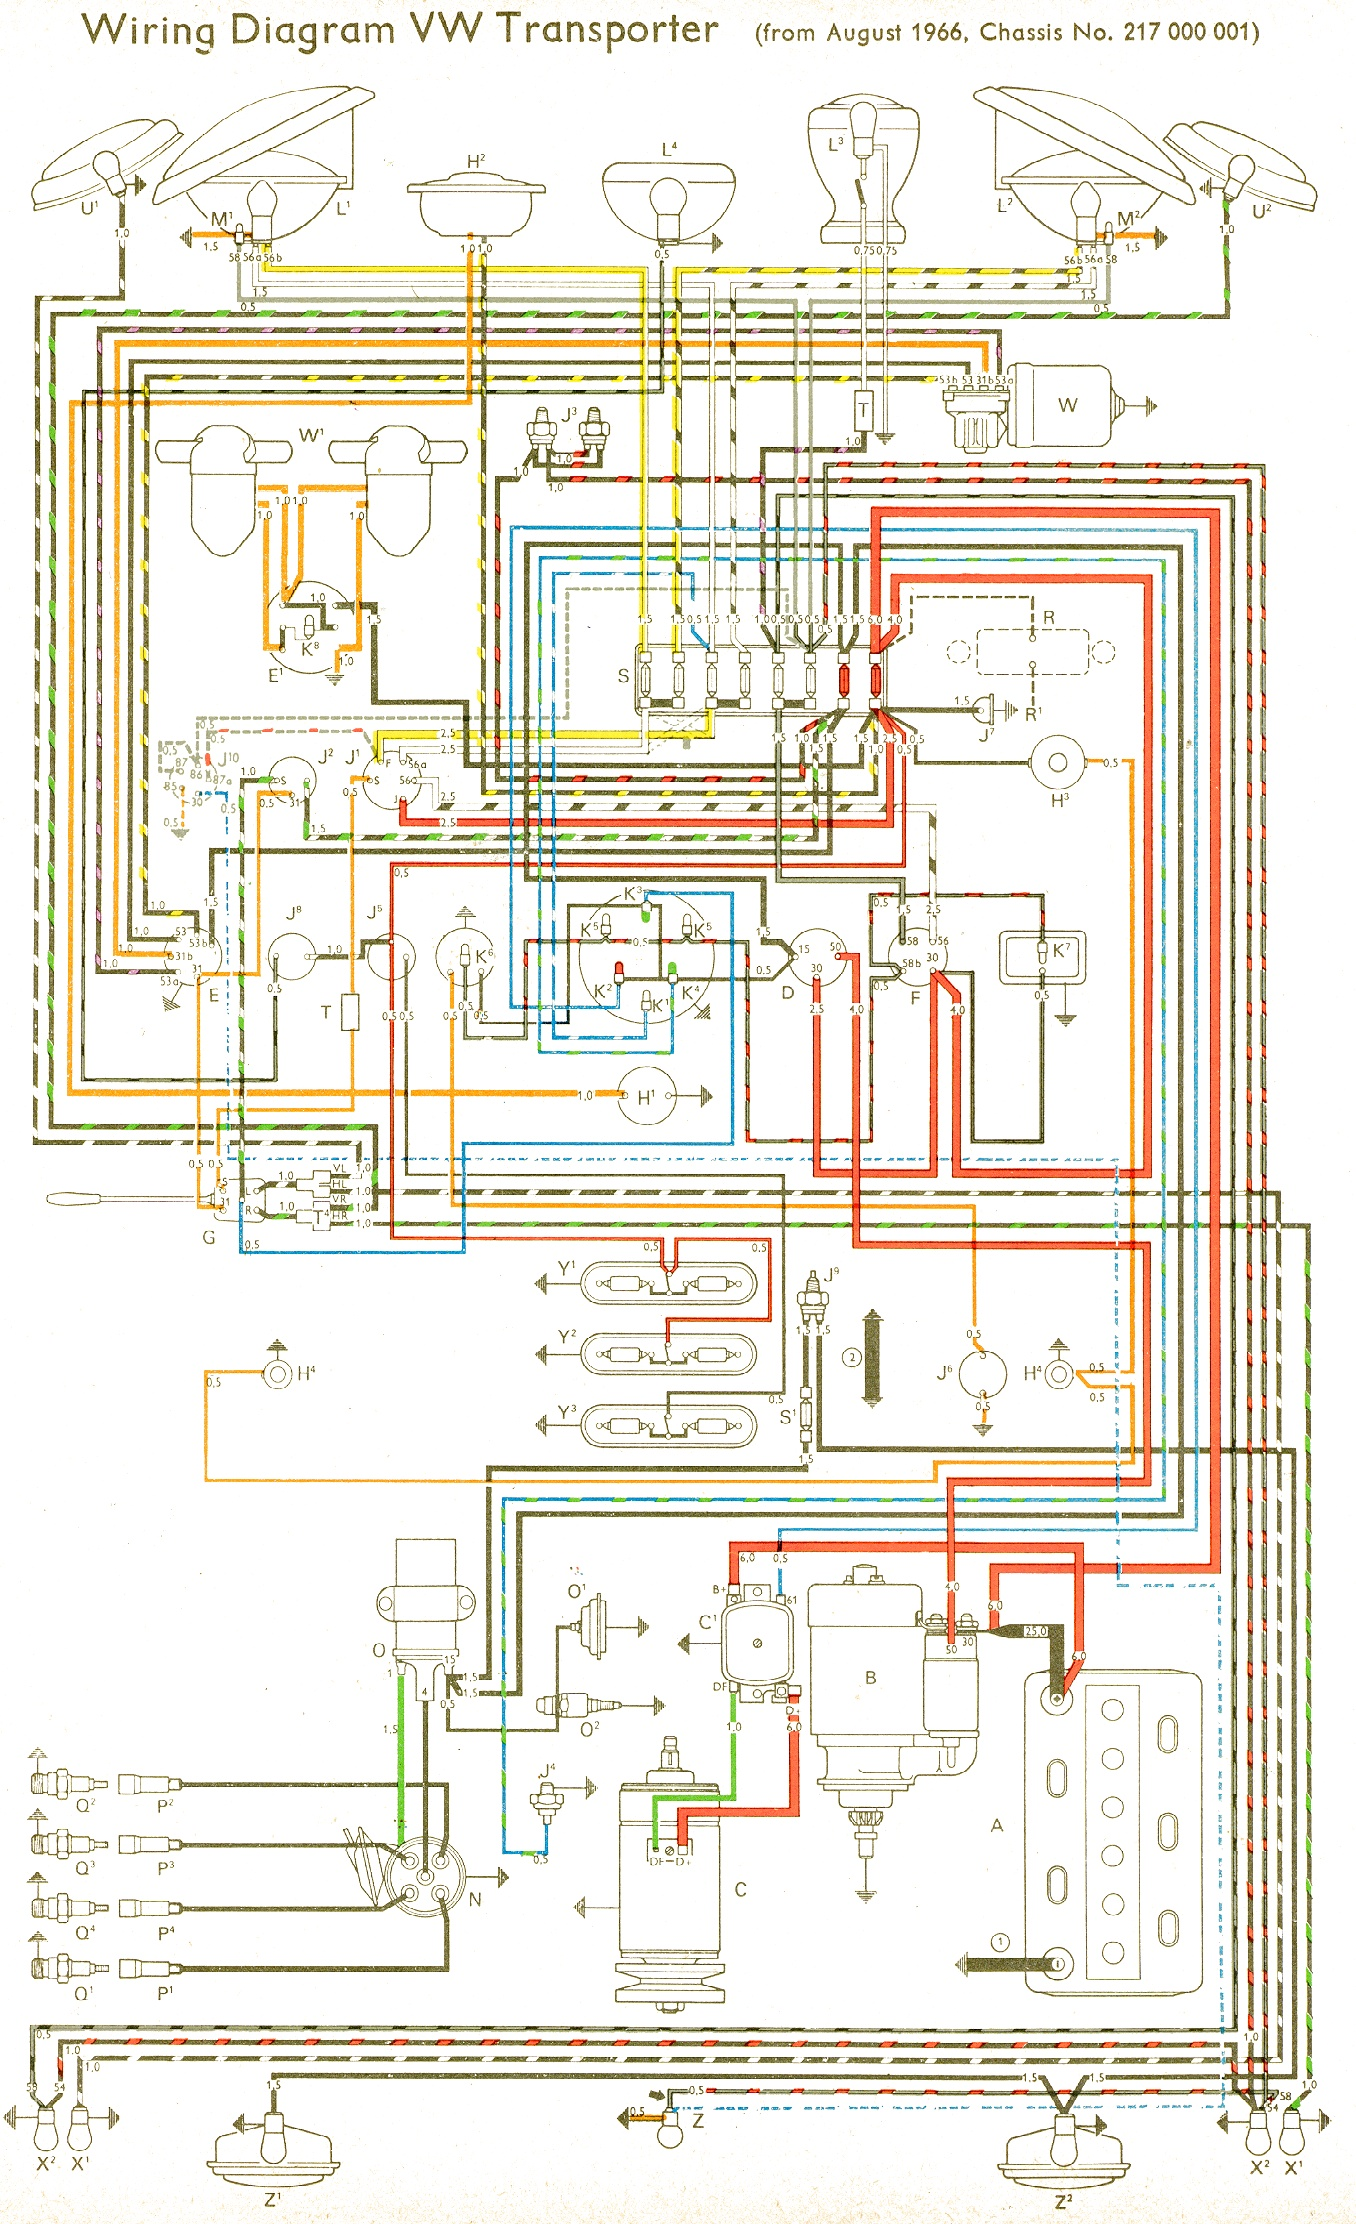 bus 66 vintagebus com vw bus (and other) wiring diagrams vw thing wiring diagram at nearapp.co